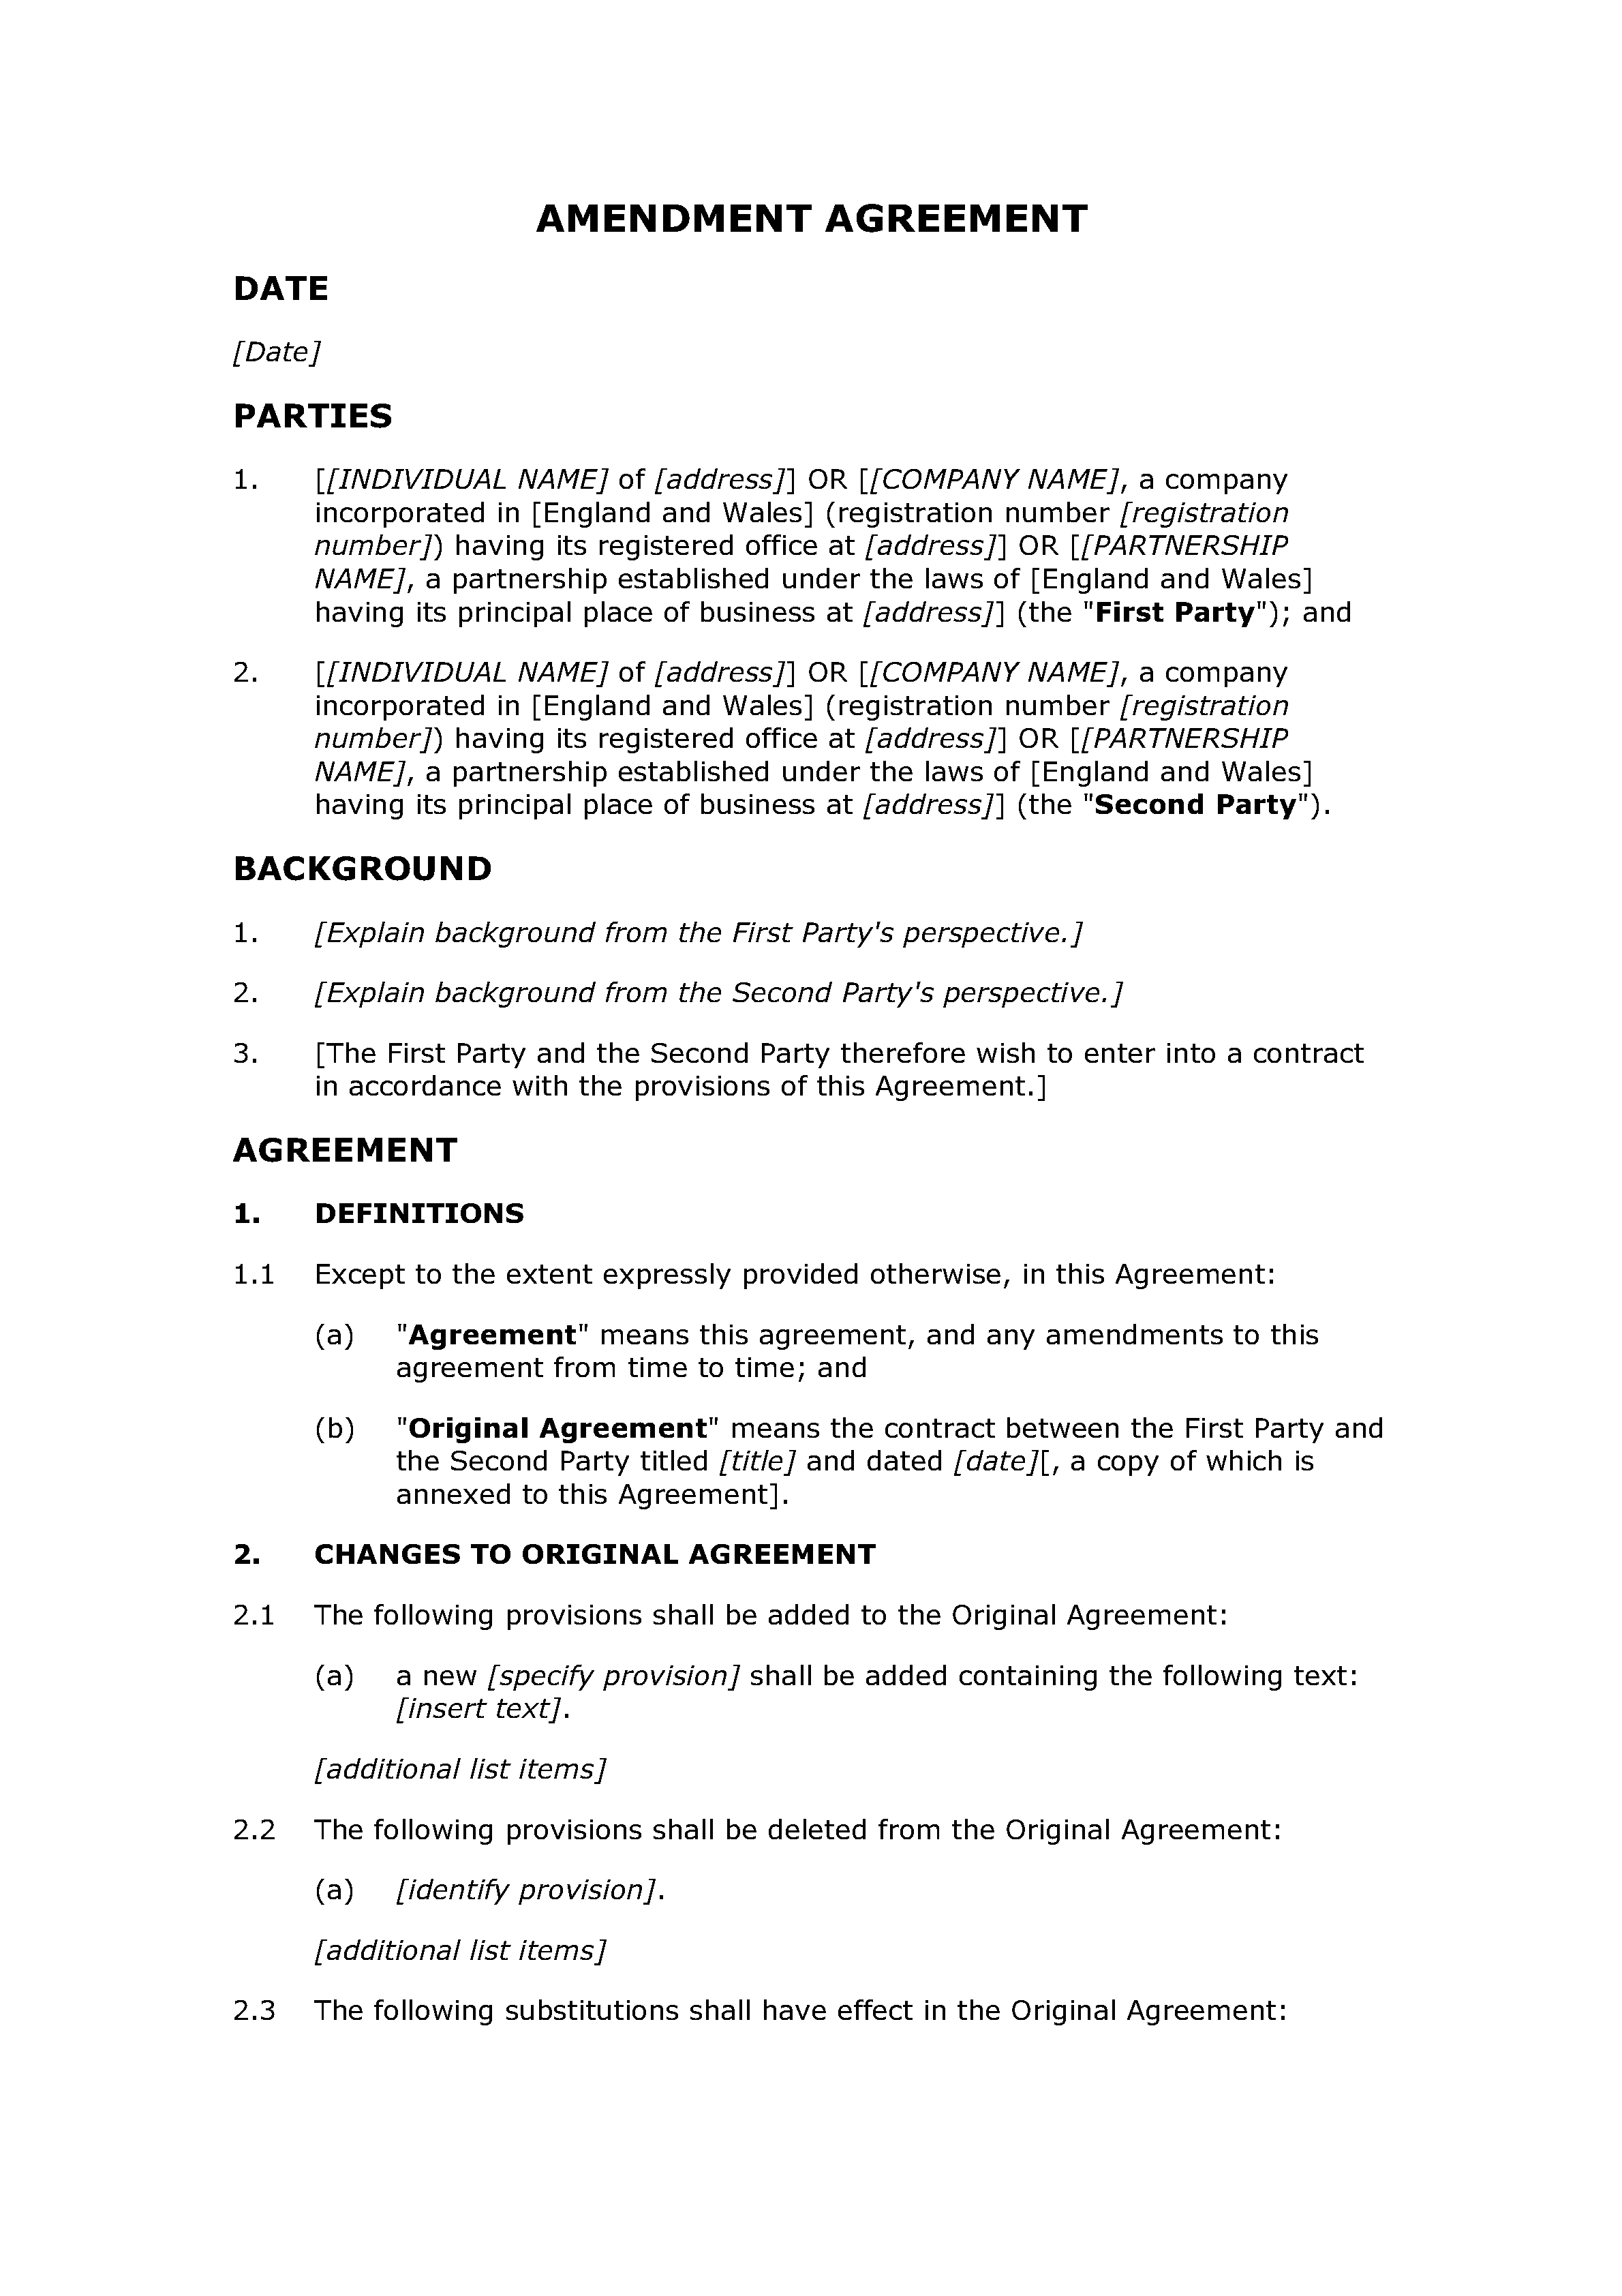 Amendment Agreement Docular